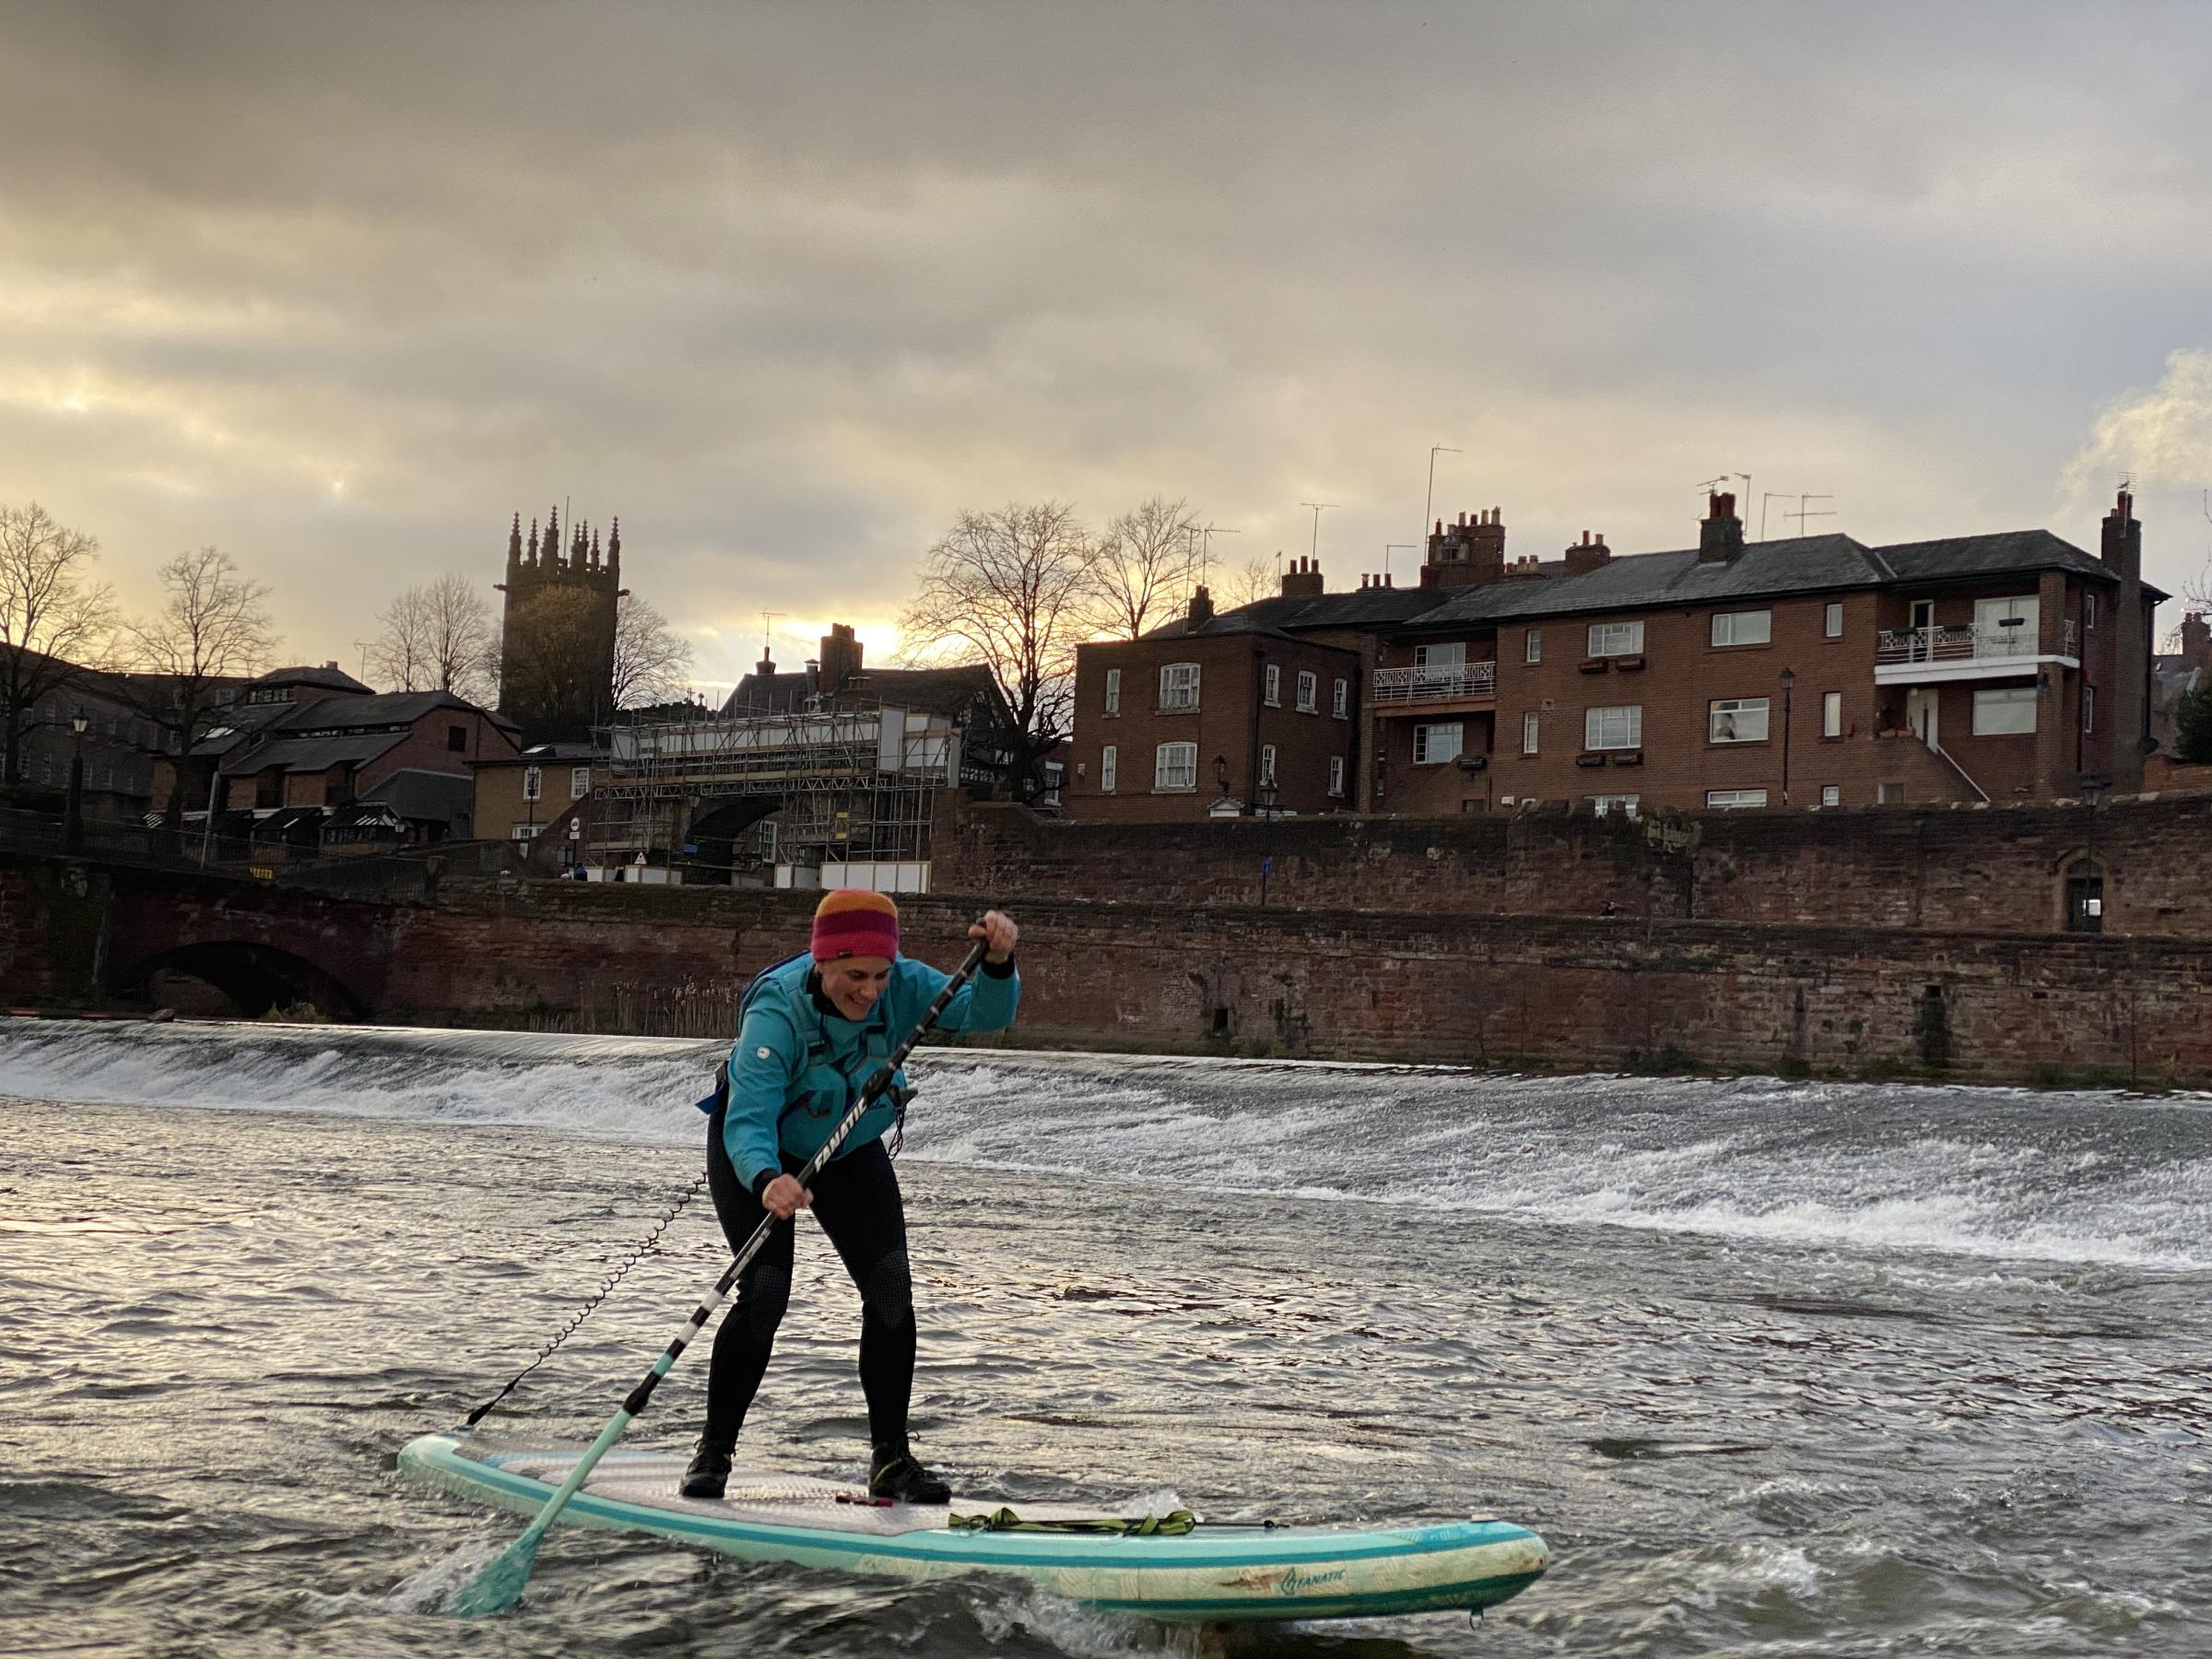 Paddleboarding on the River Dee, Chester.